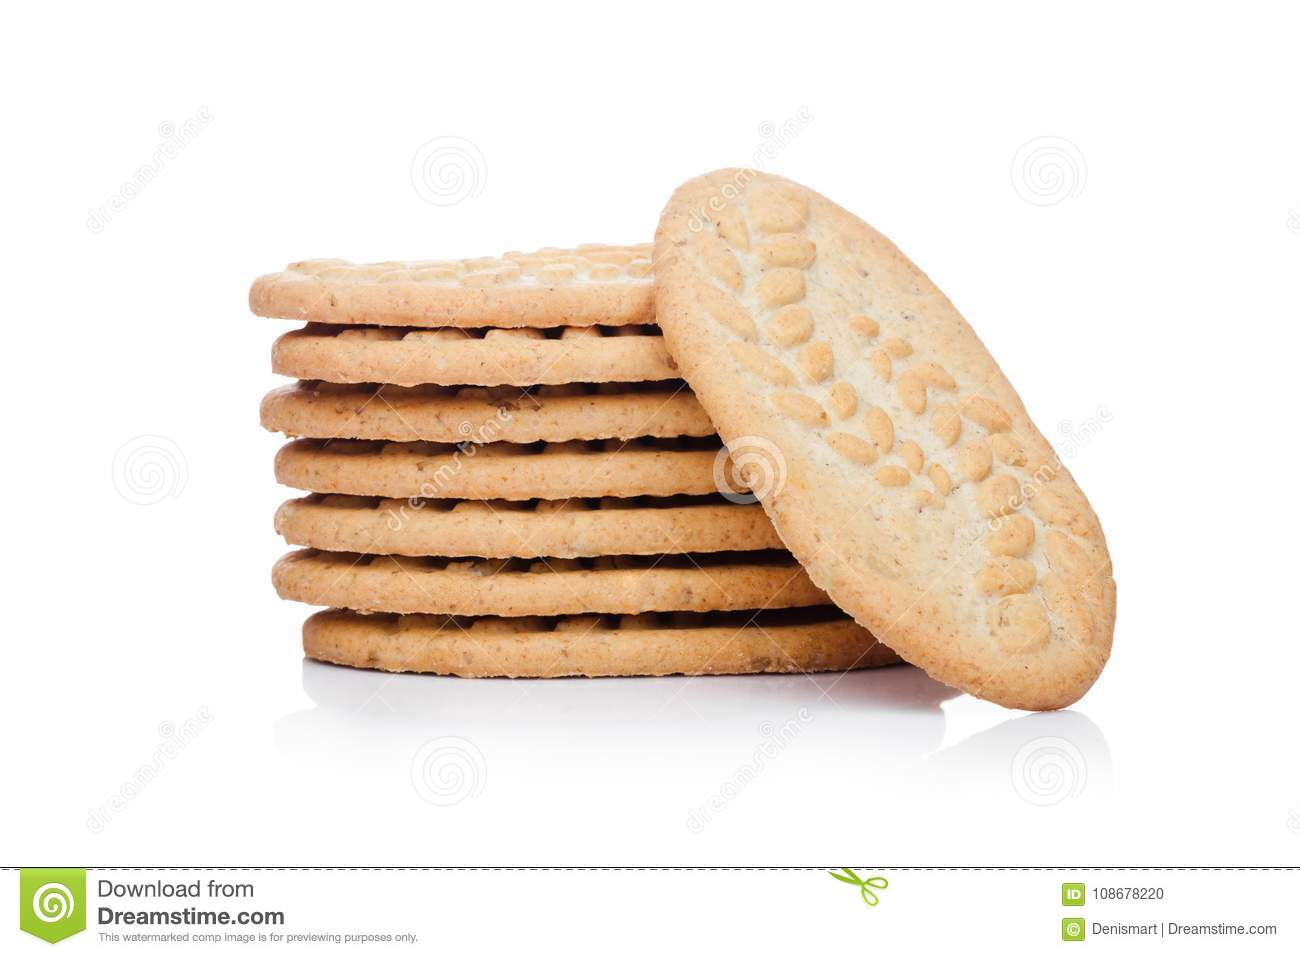 Grain Bio Healthy Bio Breakfast Grain Biscuits On White Stock Photo Image